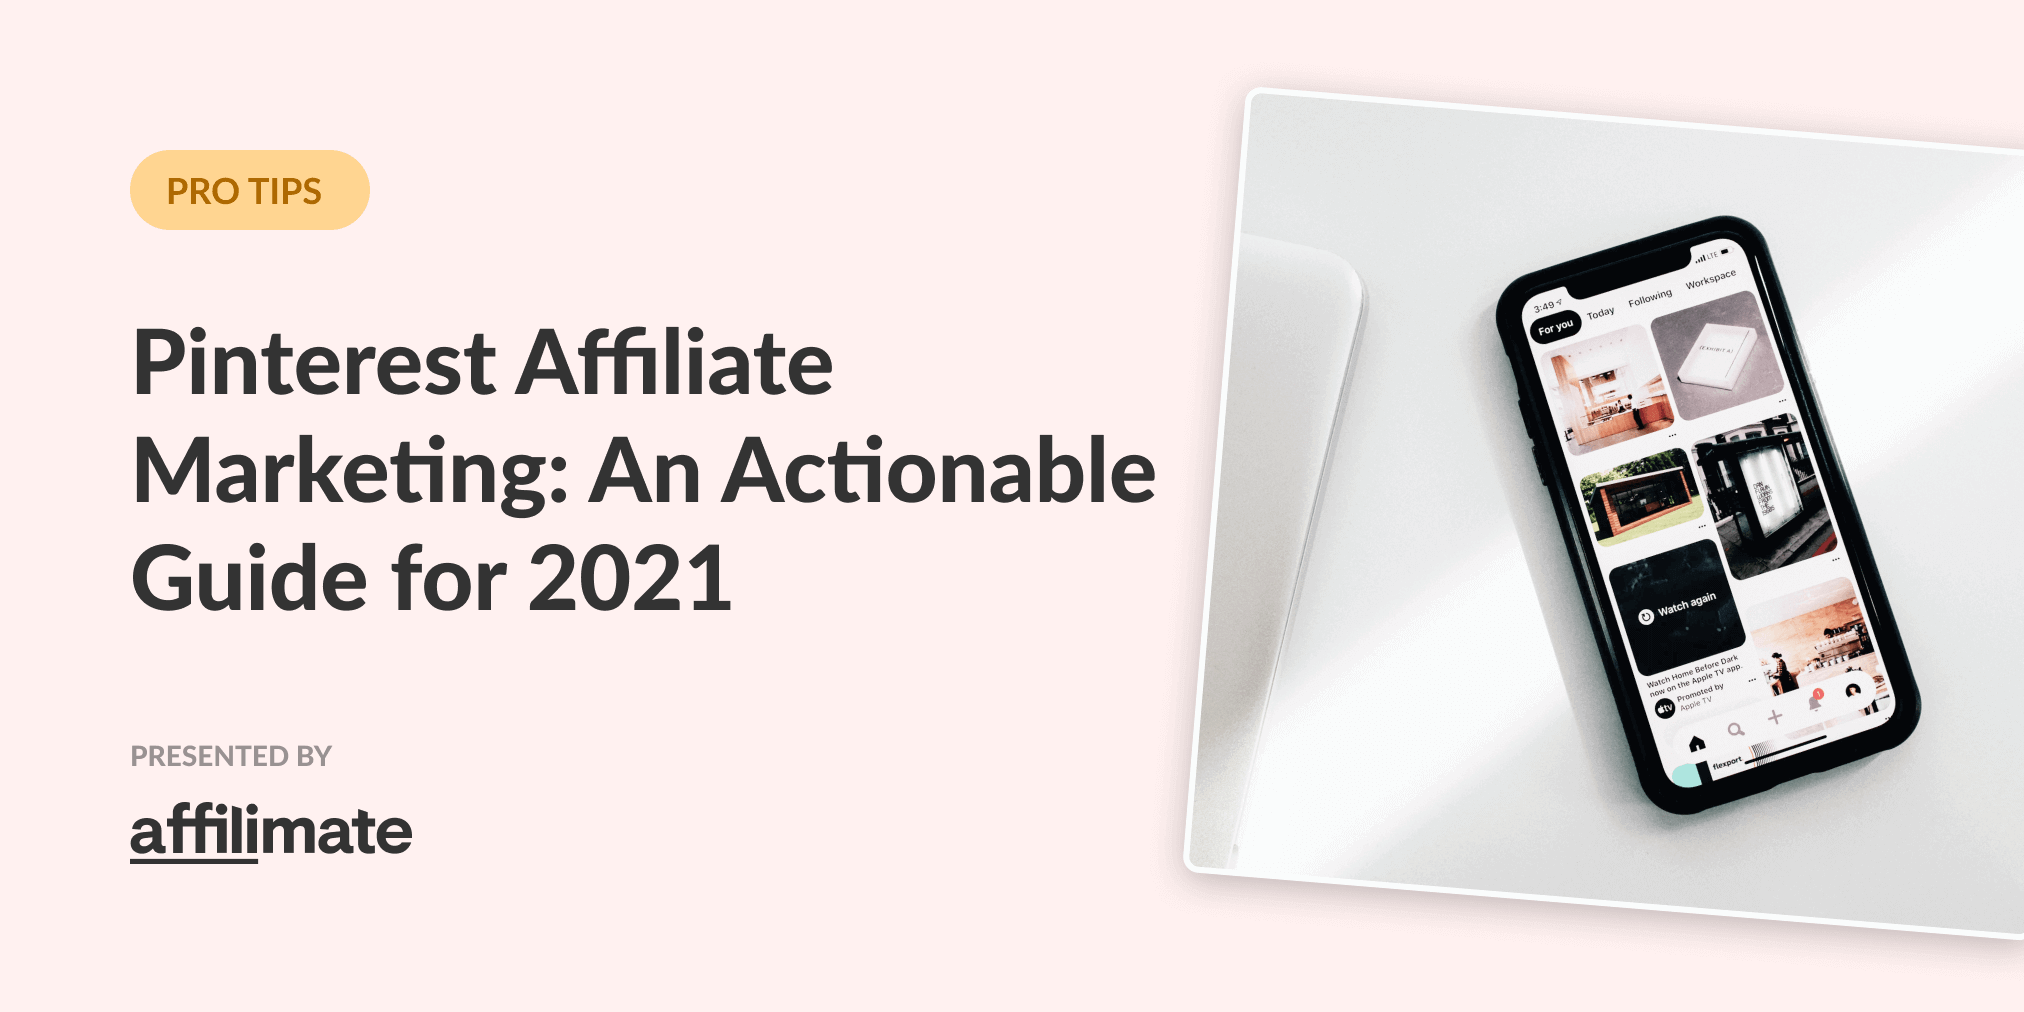 Affiliate Marketing on Pinterest: An Actionable Guide for 2021